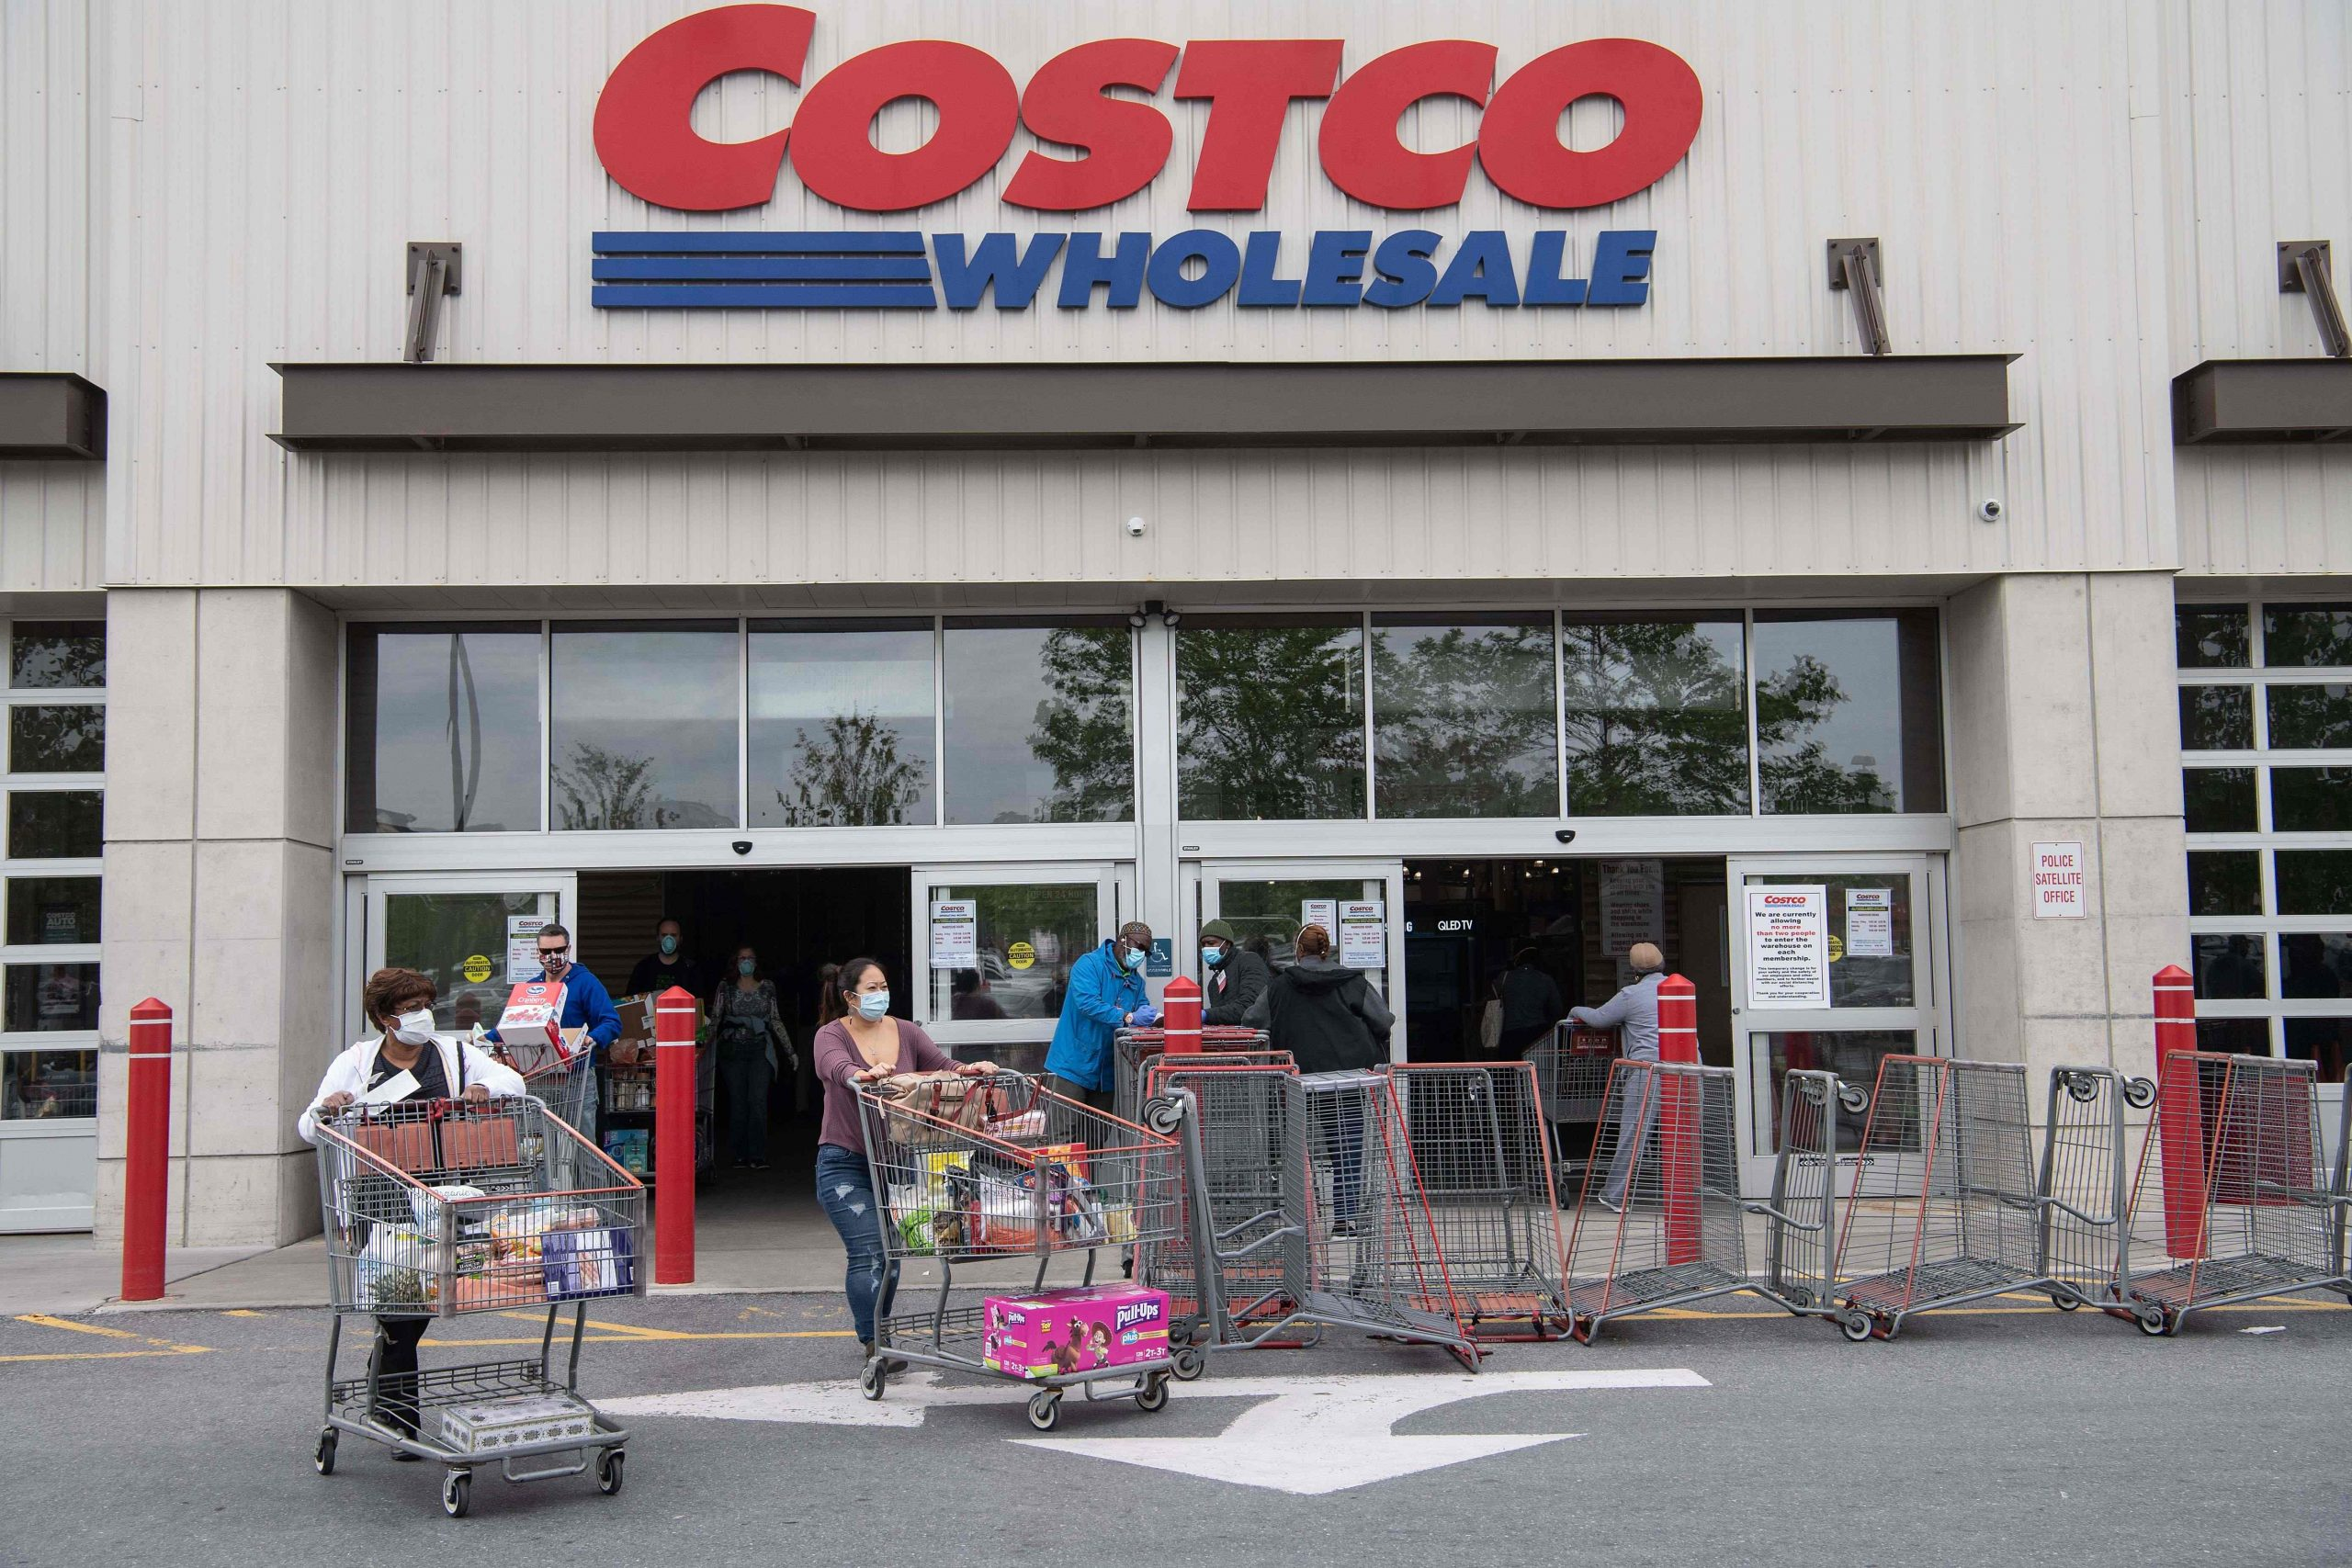 Costco face mask policy update requires all shoppers to wear a mask or shield amid coronavirus surges